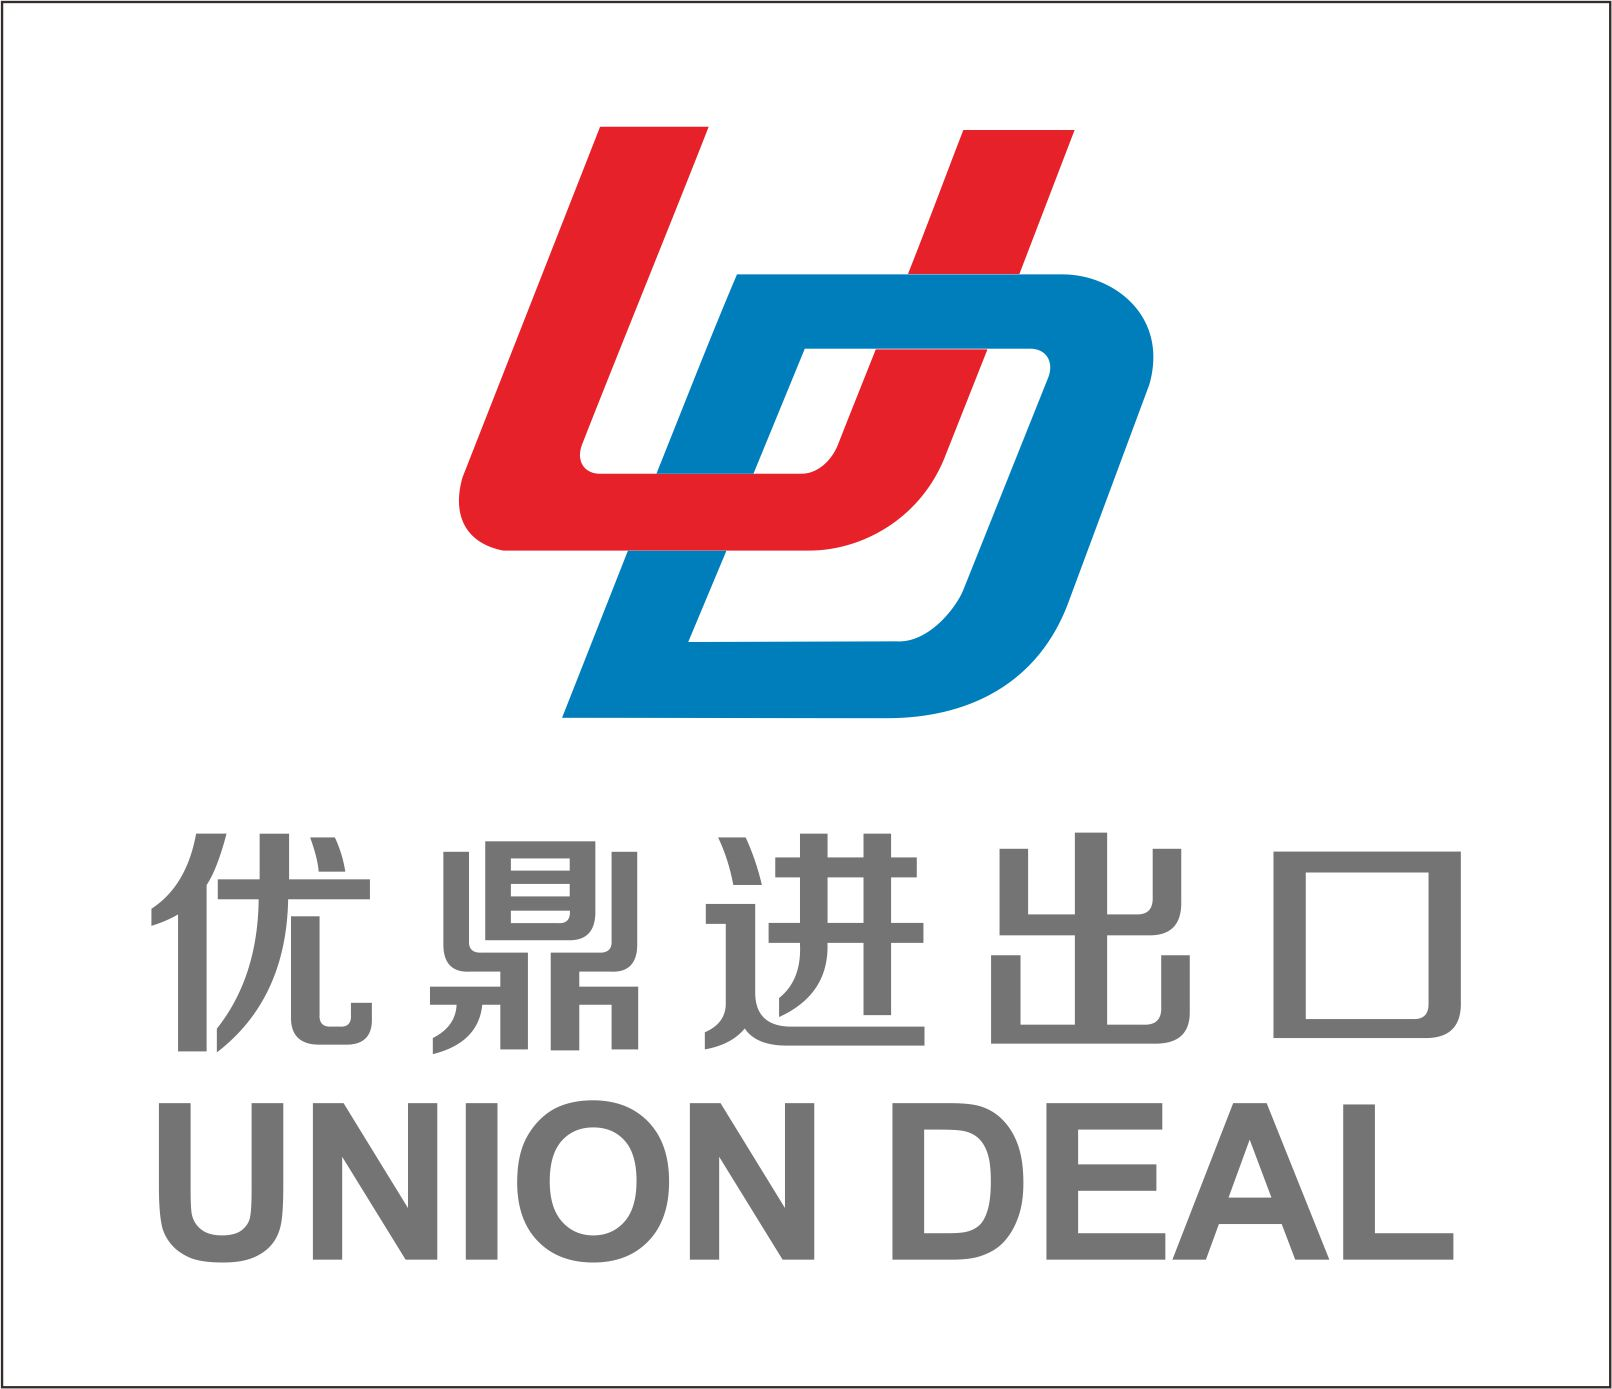 YIWU UNION DEAL IMP&EXP CO.,LTD